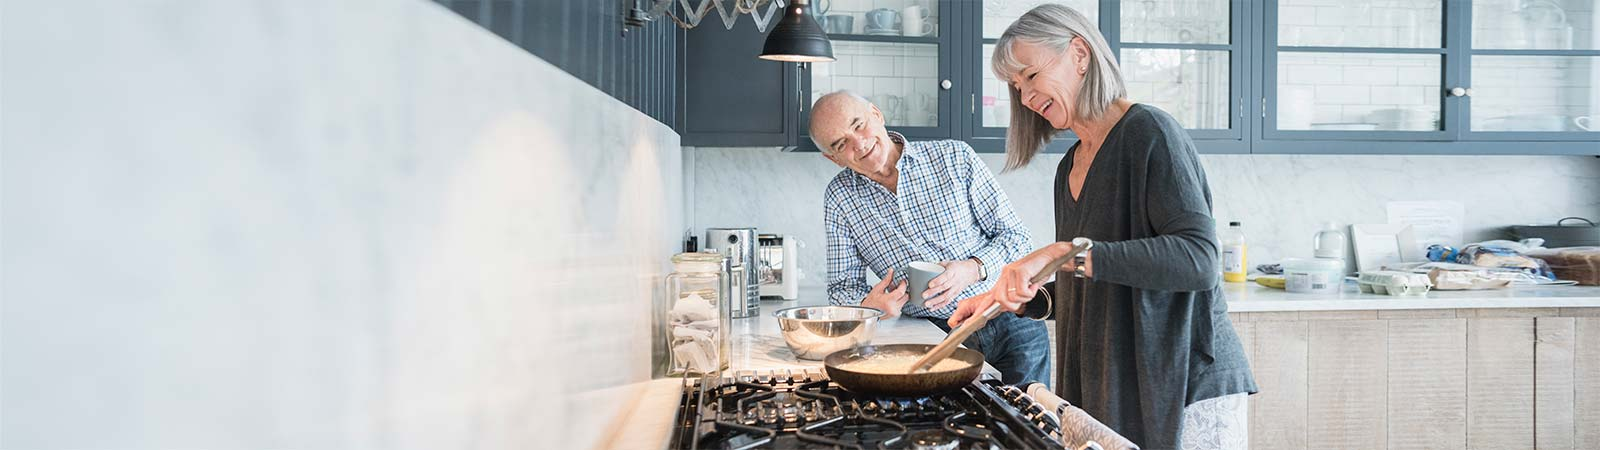 A couple in their 60's cooking & chatting in the kitchen